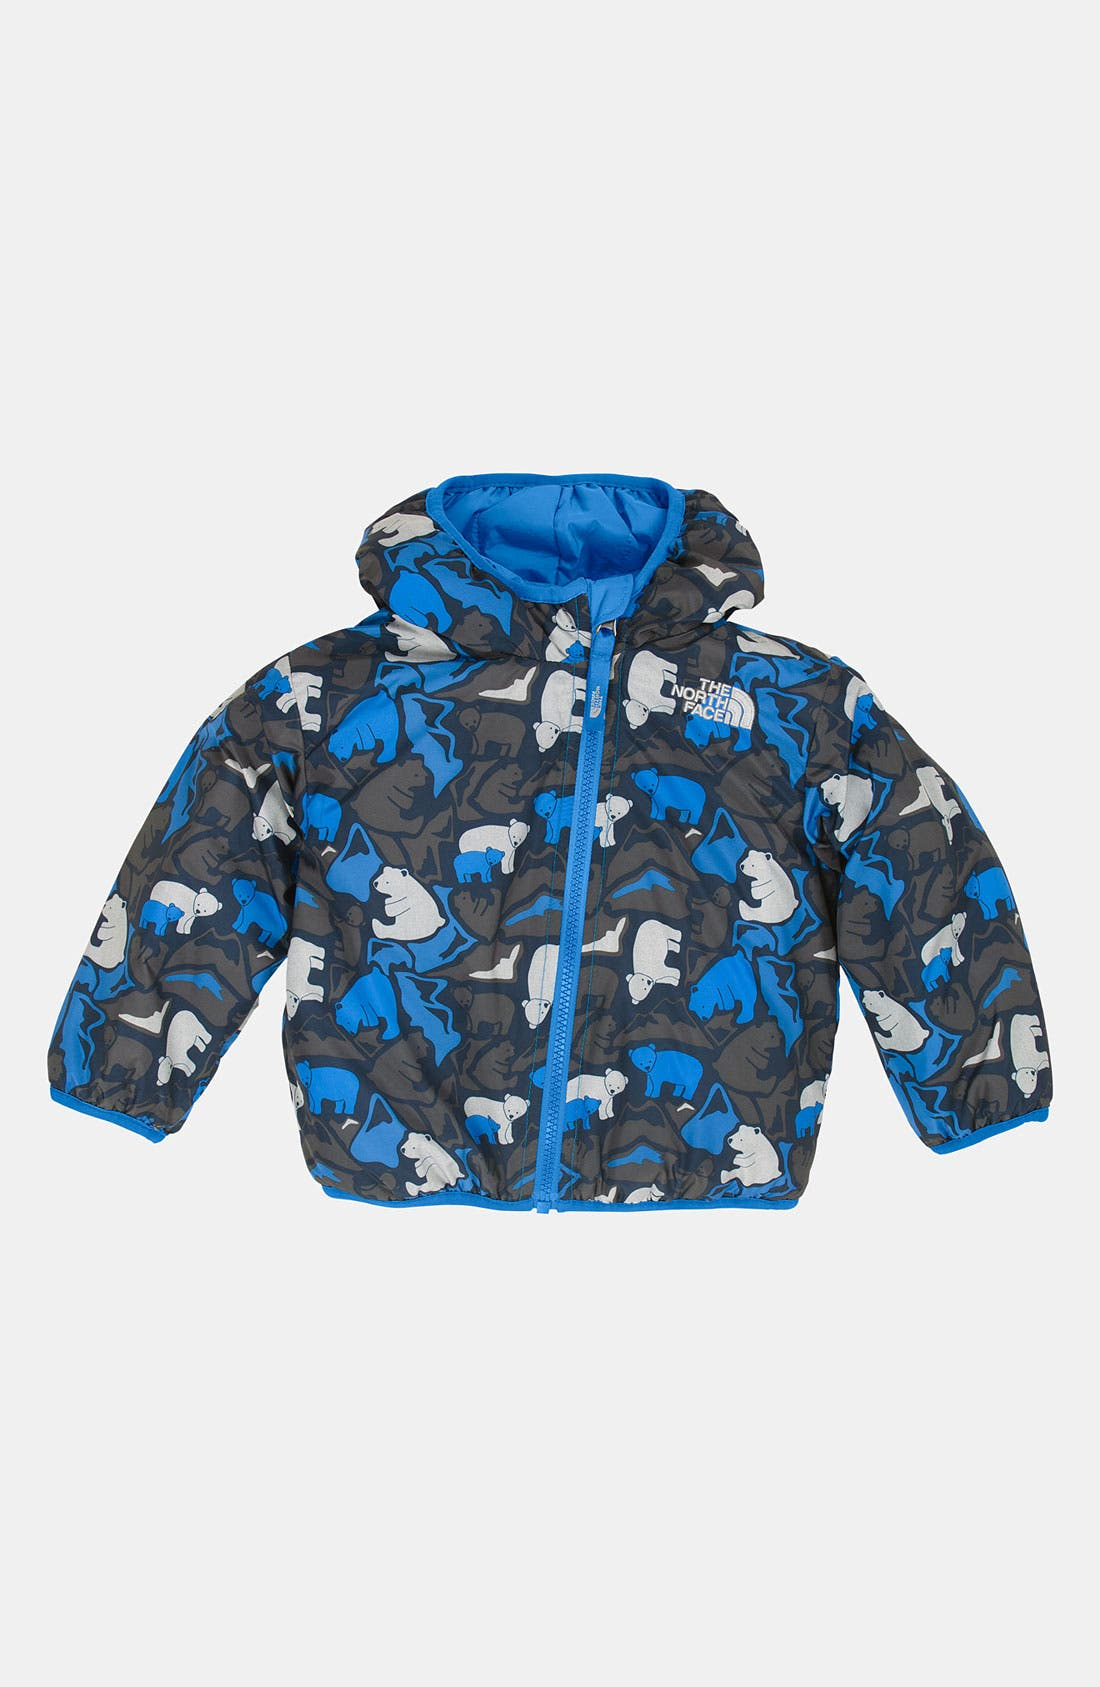 Alternate Image 1 Selected - The North Face 'Perrito' Reversible Jacket (Baby)